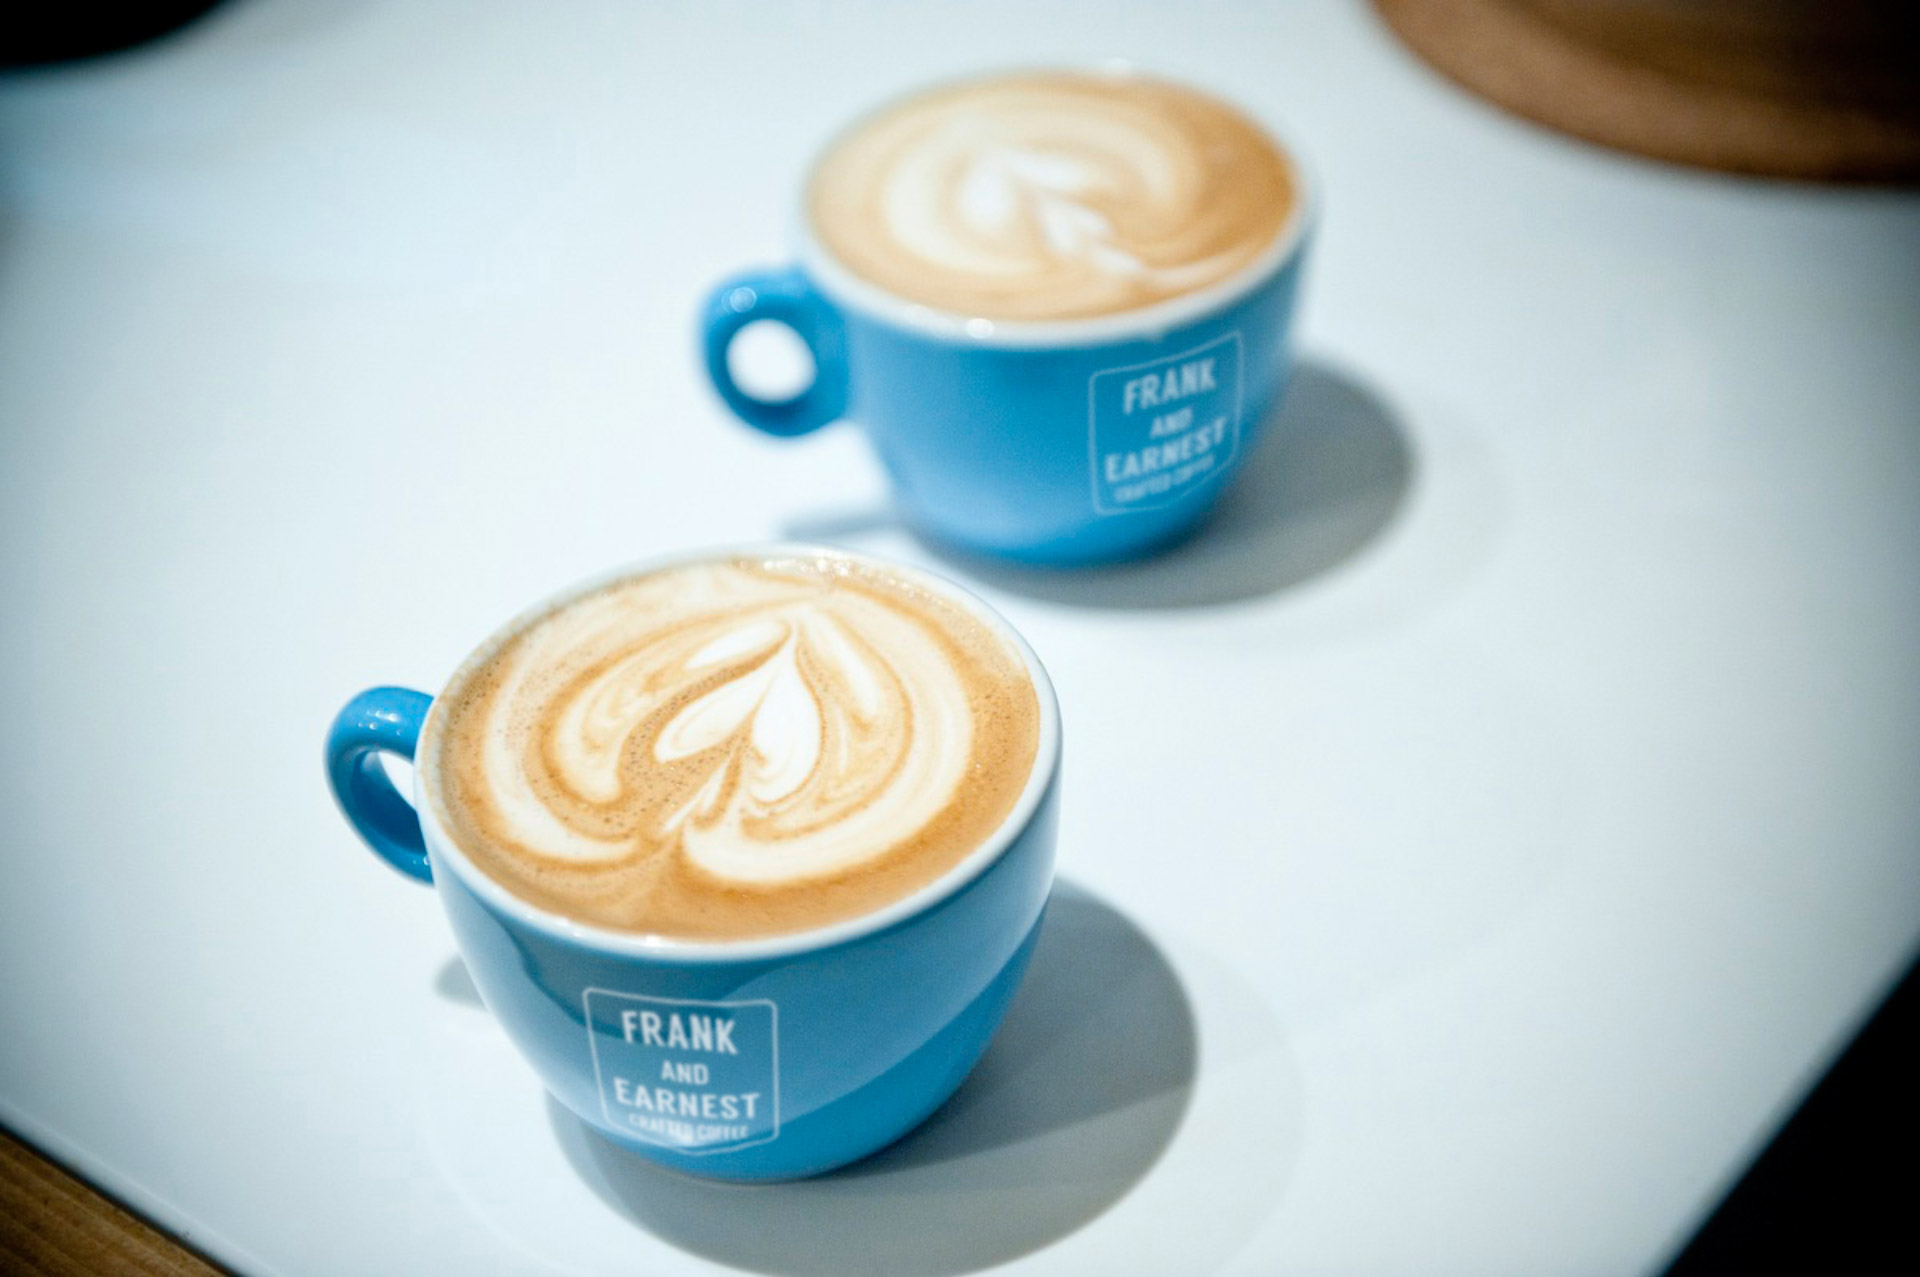 Frank & Earnest crafted coffee cups